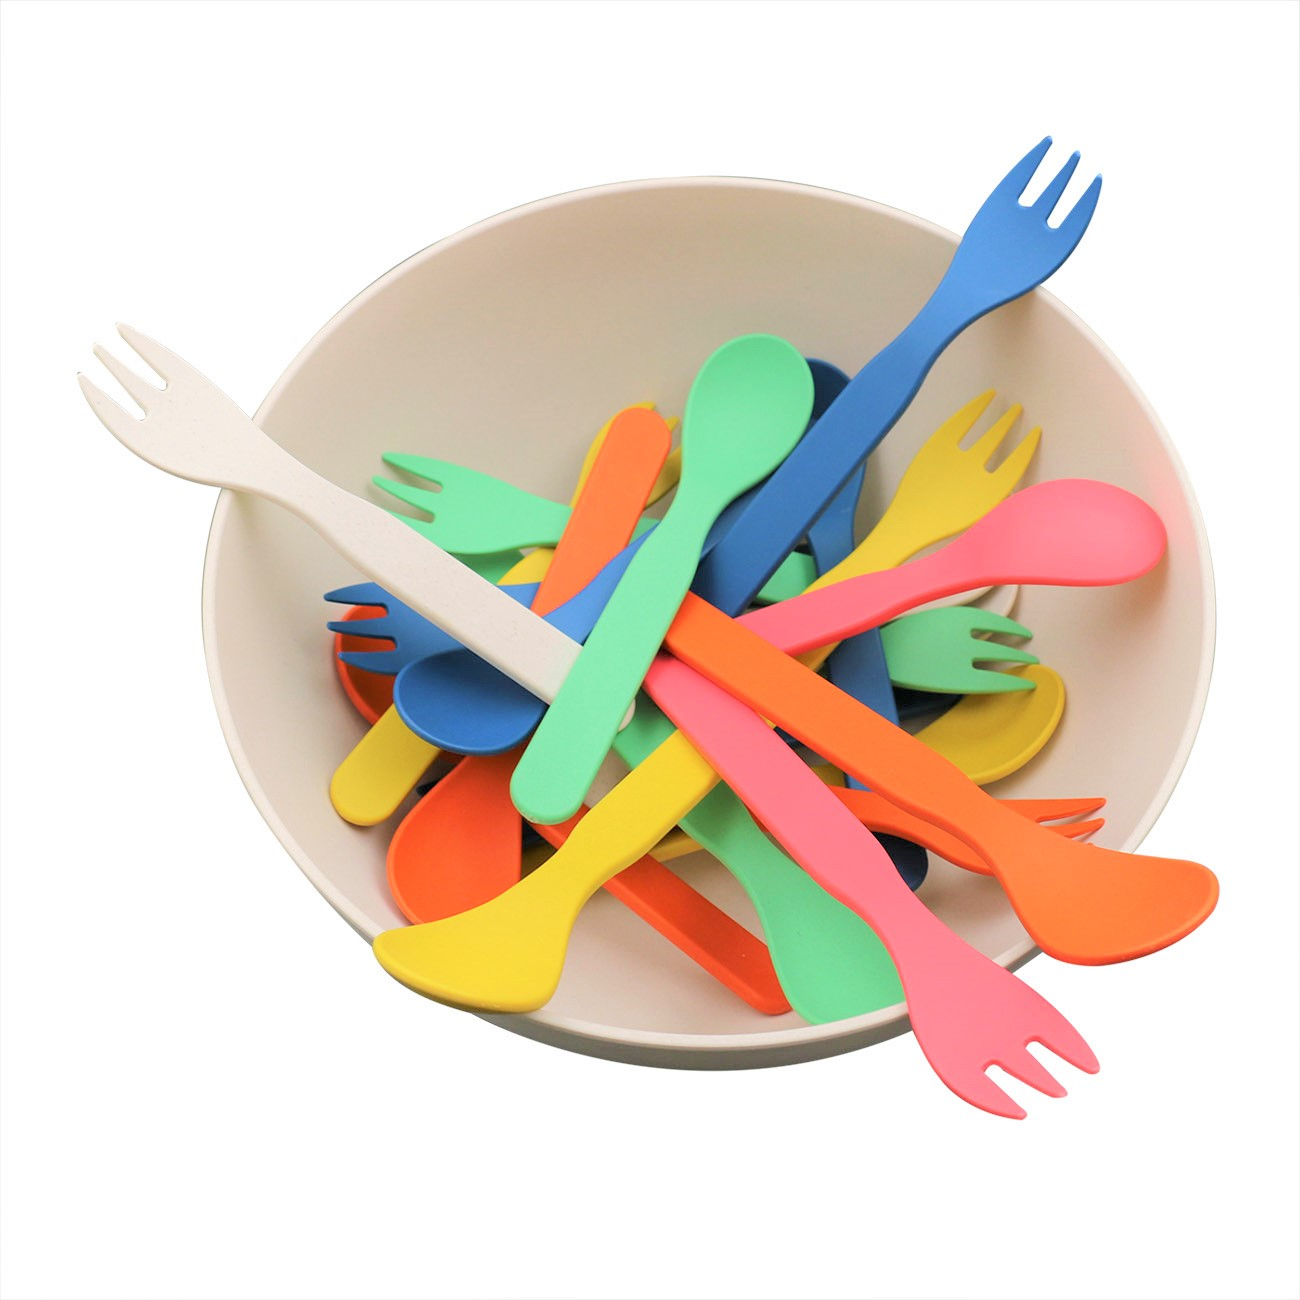 100% biodegradable cutlery